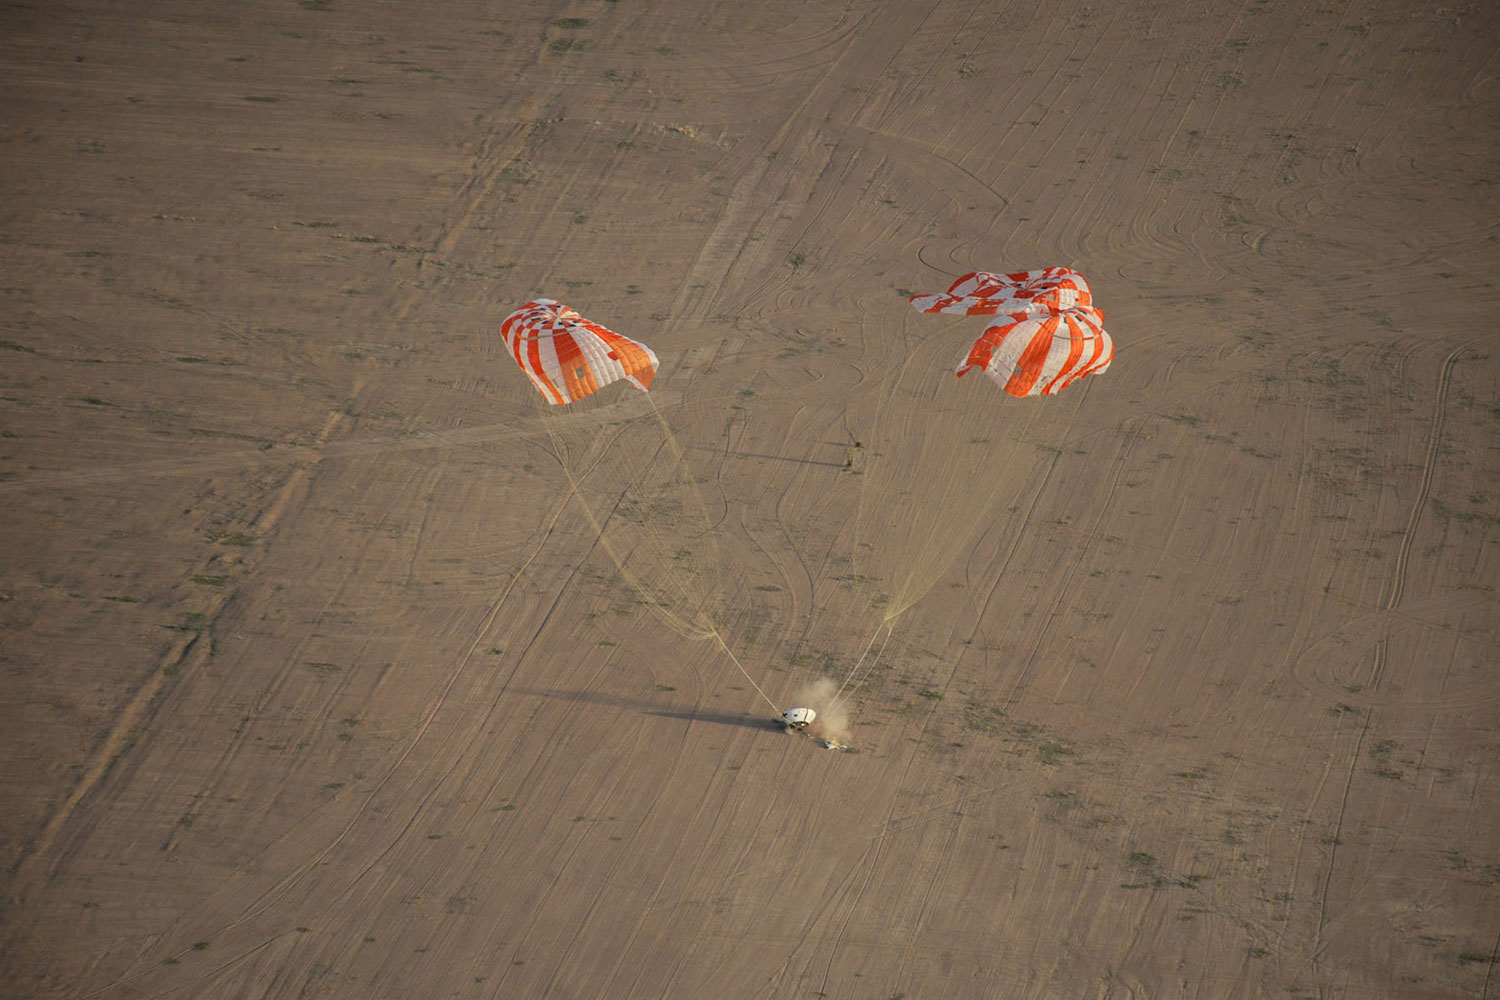 A test model of the Orion spacecraft with its parachutes was dropped high above the the Arizona desert on Feb. 29, 2012. This particular drop test—the latest of a series—studied the stability of the wake left by the Orion as it descended.